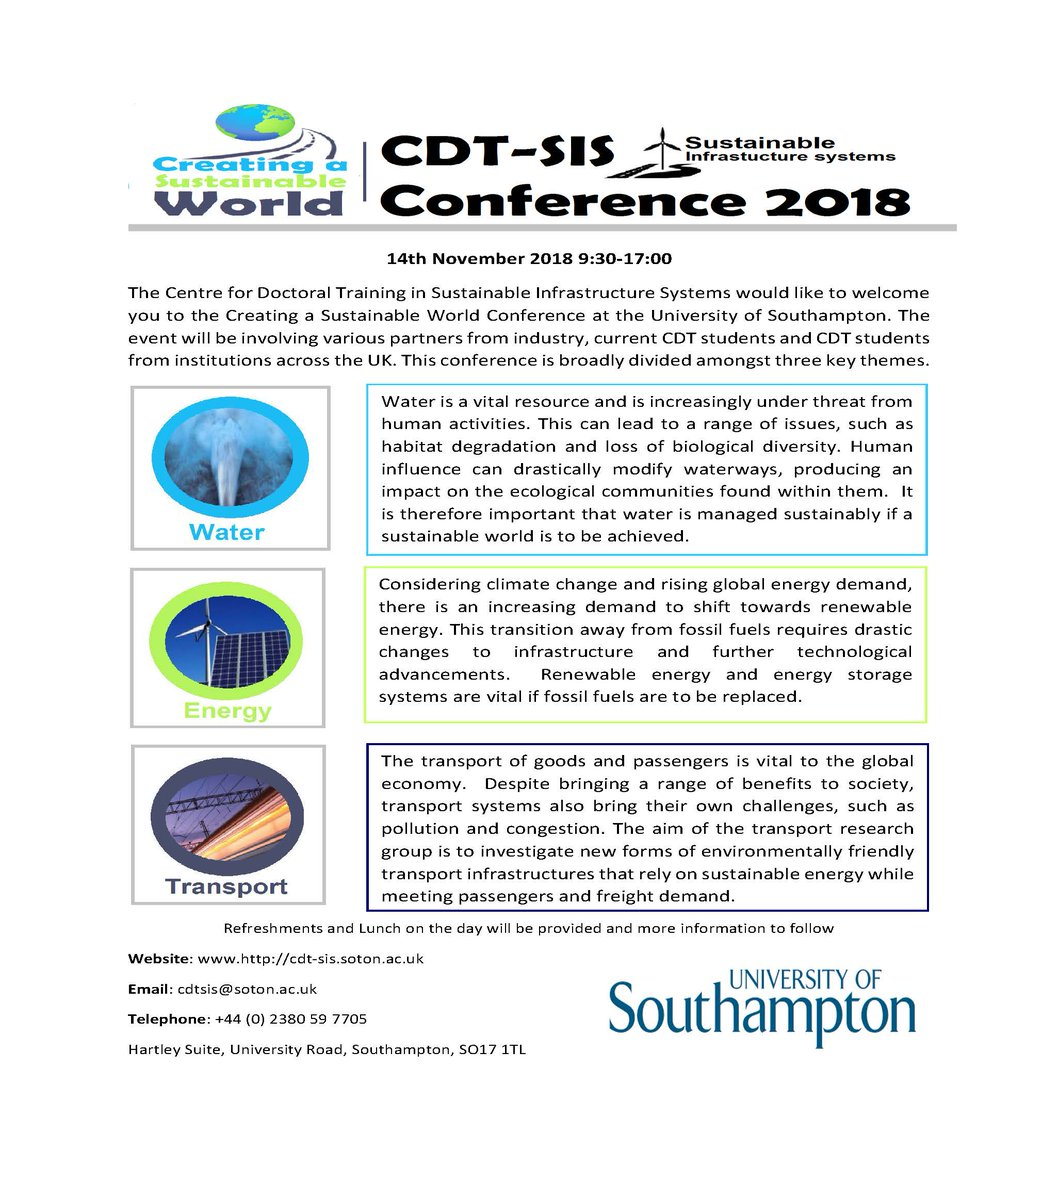 test Twitter Media - Remember to go and take a look at ICER presenters at the @CDTConference in November 2018 you can sign up at eventbrite at the following link https://t.co/KWPFN8ZXnm @unisouthampton @SotonEnvSci @SotonEngEnv https://t.co/xgoq8d9wOk